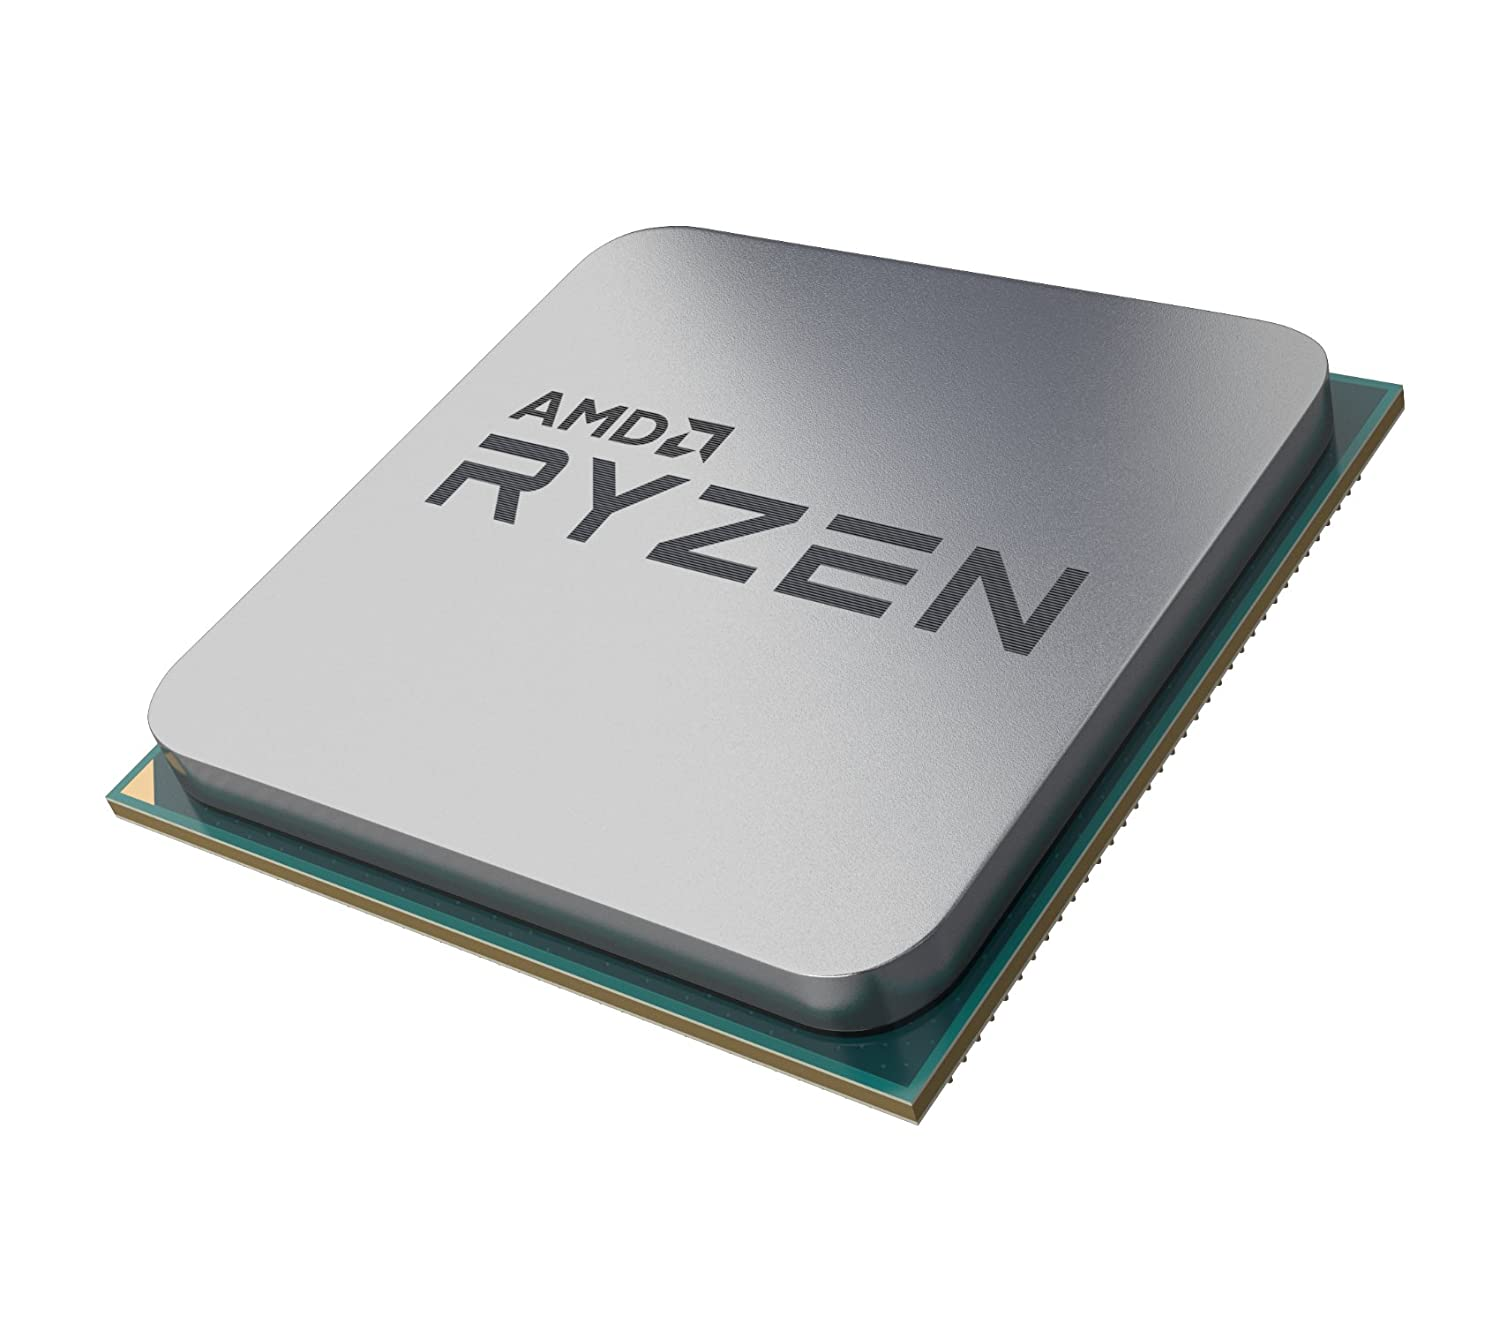 AMD RYZEN 5 2400G 3.6 GHz AM4